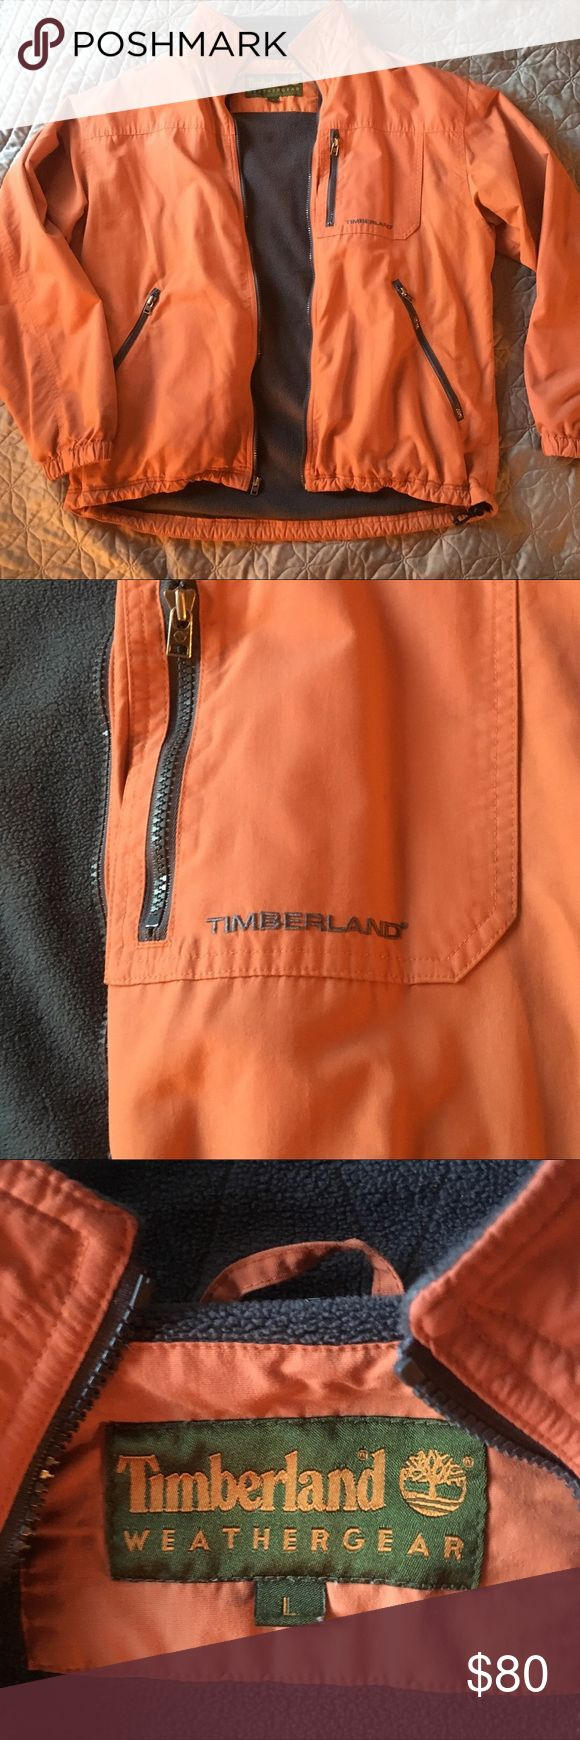 "Timberland Weathergear jacket Men's Timberland weathergear jacket. Orange outer with dark grey fleece inside. 3 front zipper pockets - one on left breast. Adjustable waist. In perfect condition. No picture of inside material tag - it is faded and just white.   Measurements are approximate lying flat.  Sleeve 25"" Shoulder to hem 27"" Armpit to armpit 25"" Timberland Jackets & Coats"